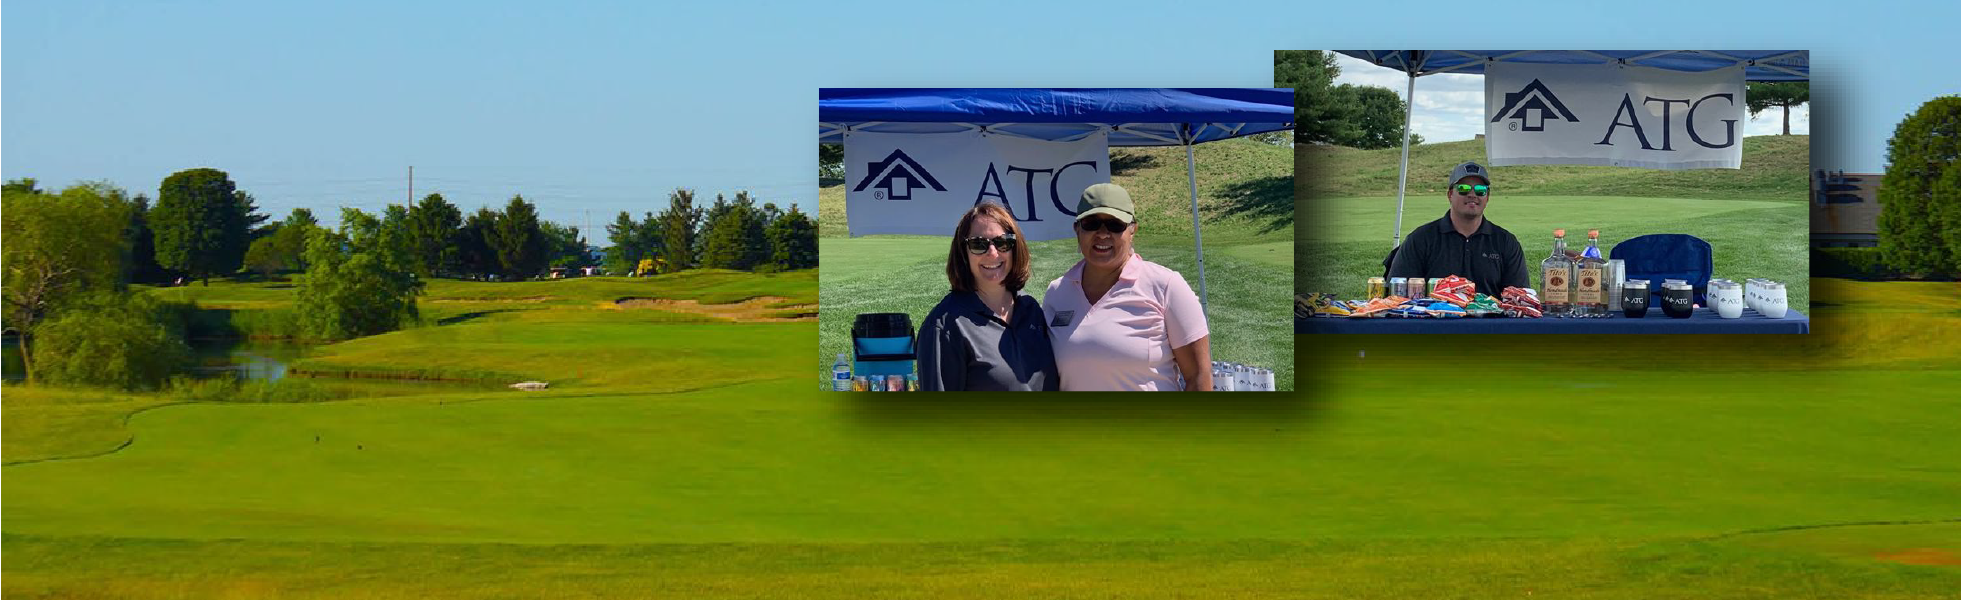 CCAR Golf Outing 2019 banner